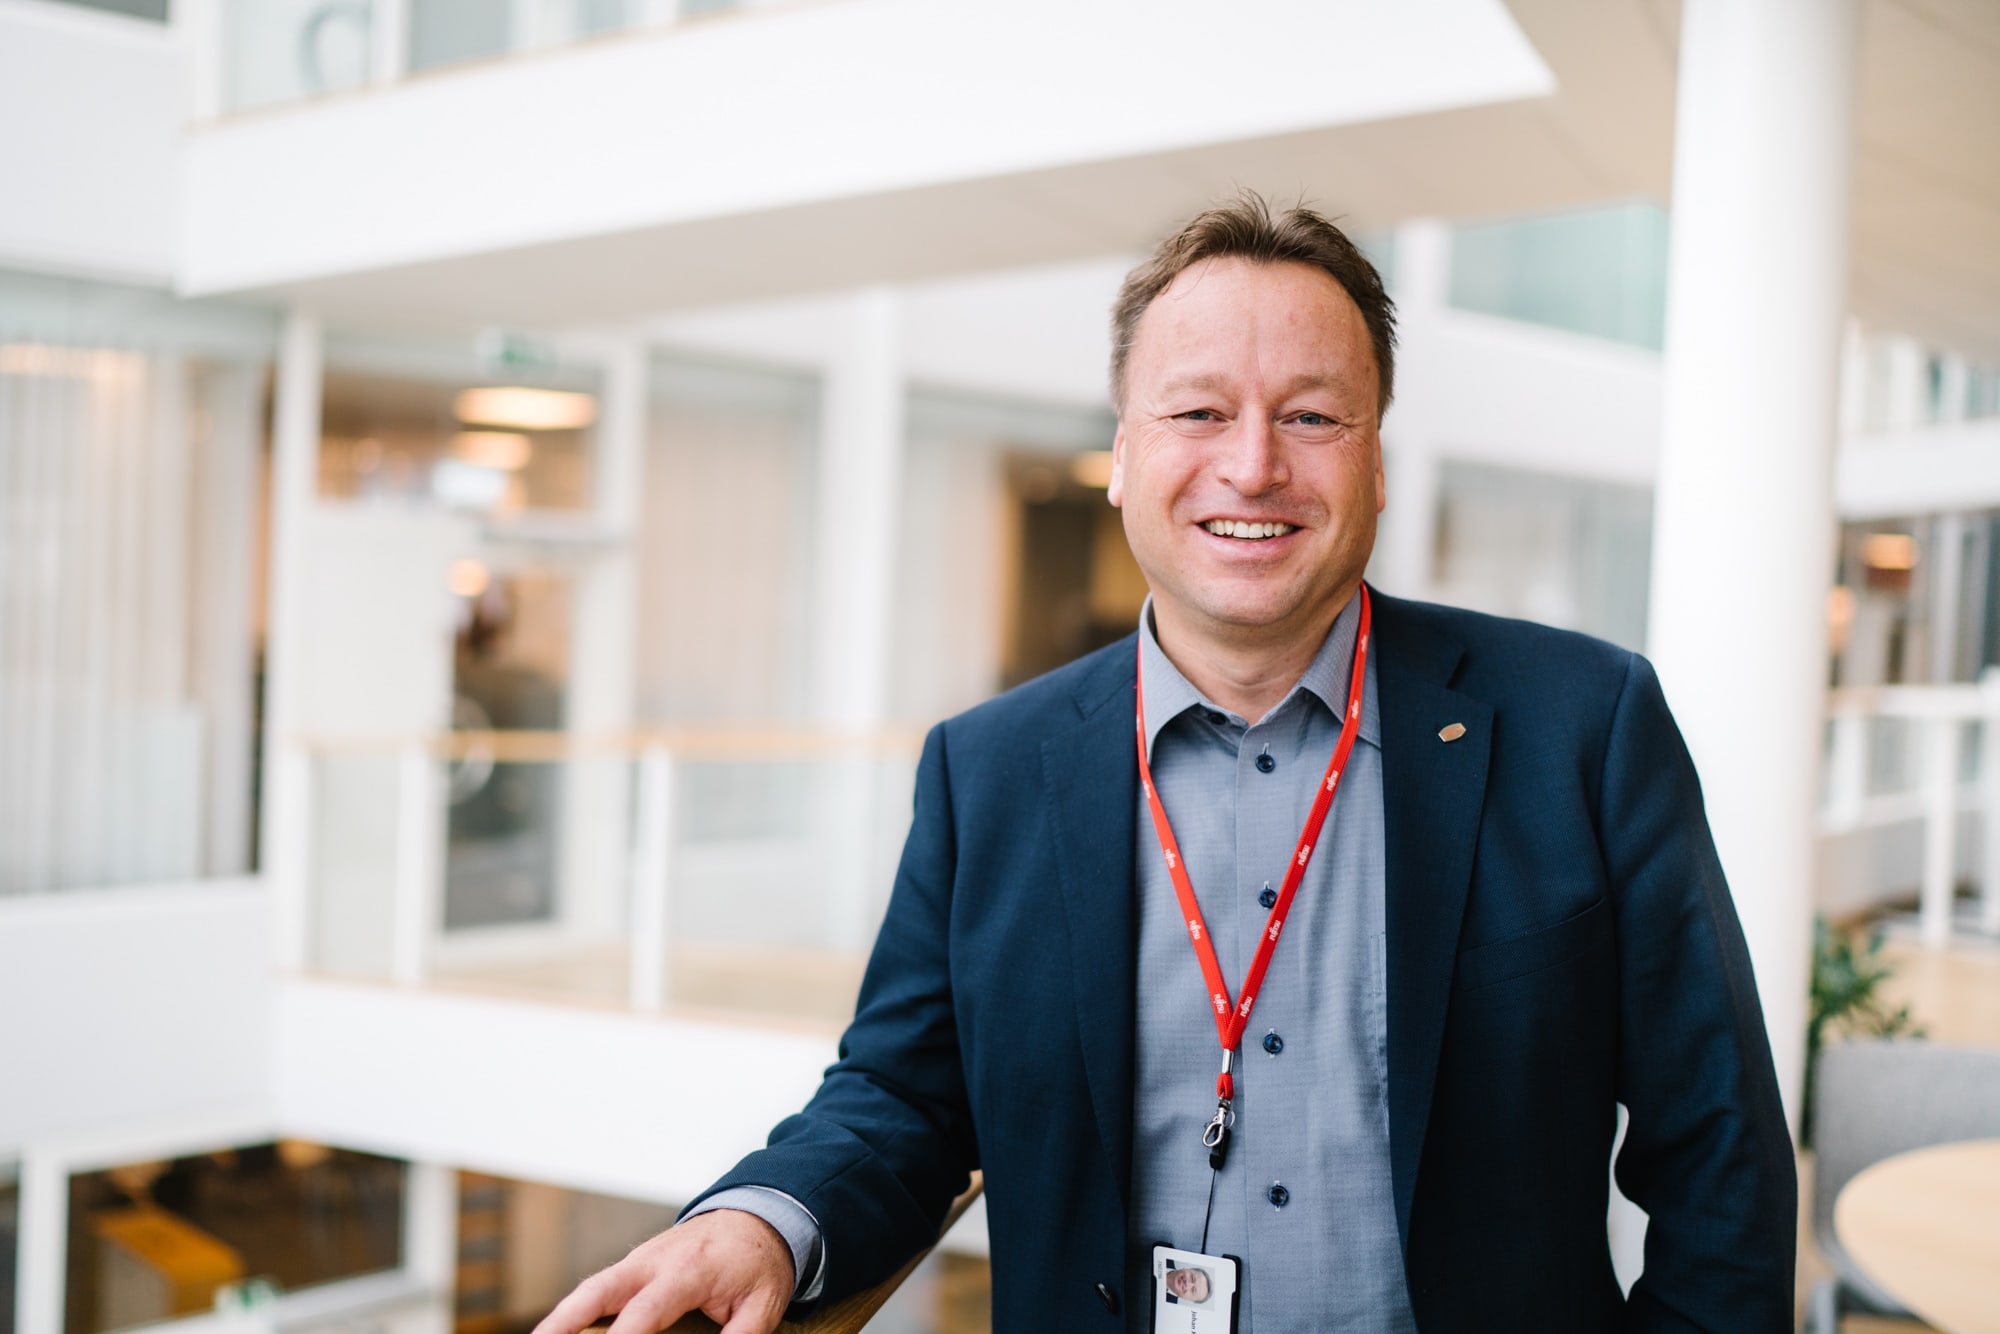 Fujitsu's Site Manager Johan Kilenius in Gothenburg